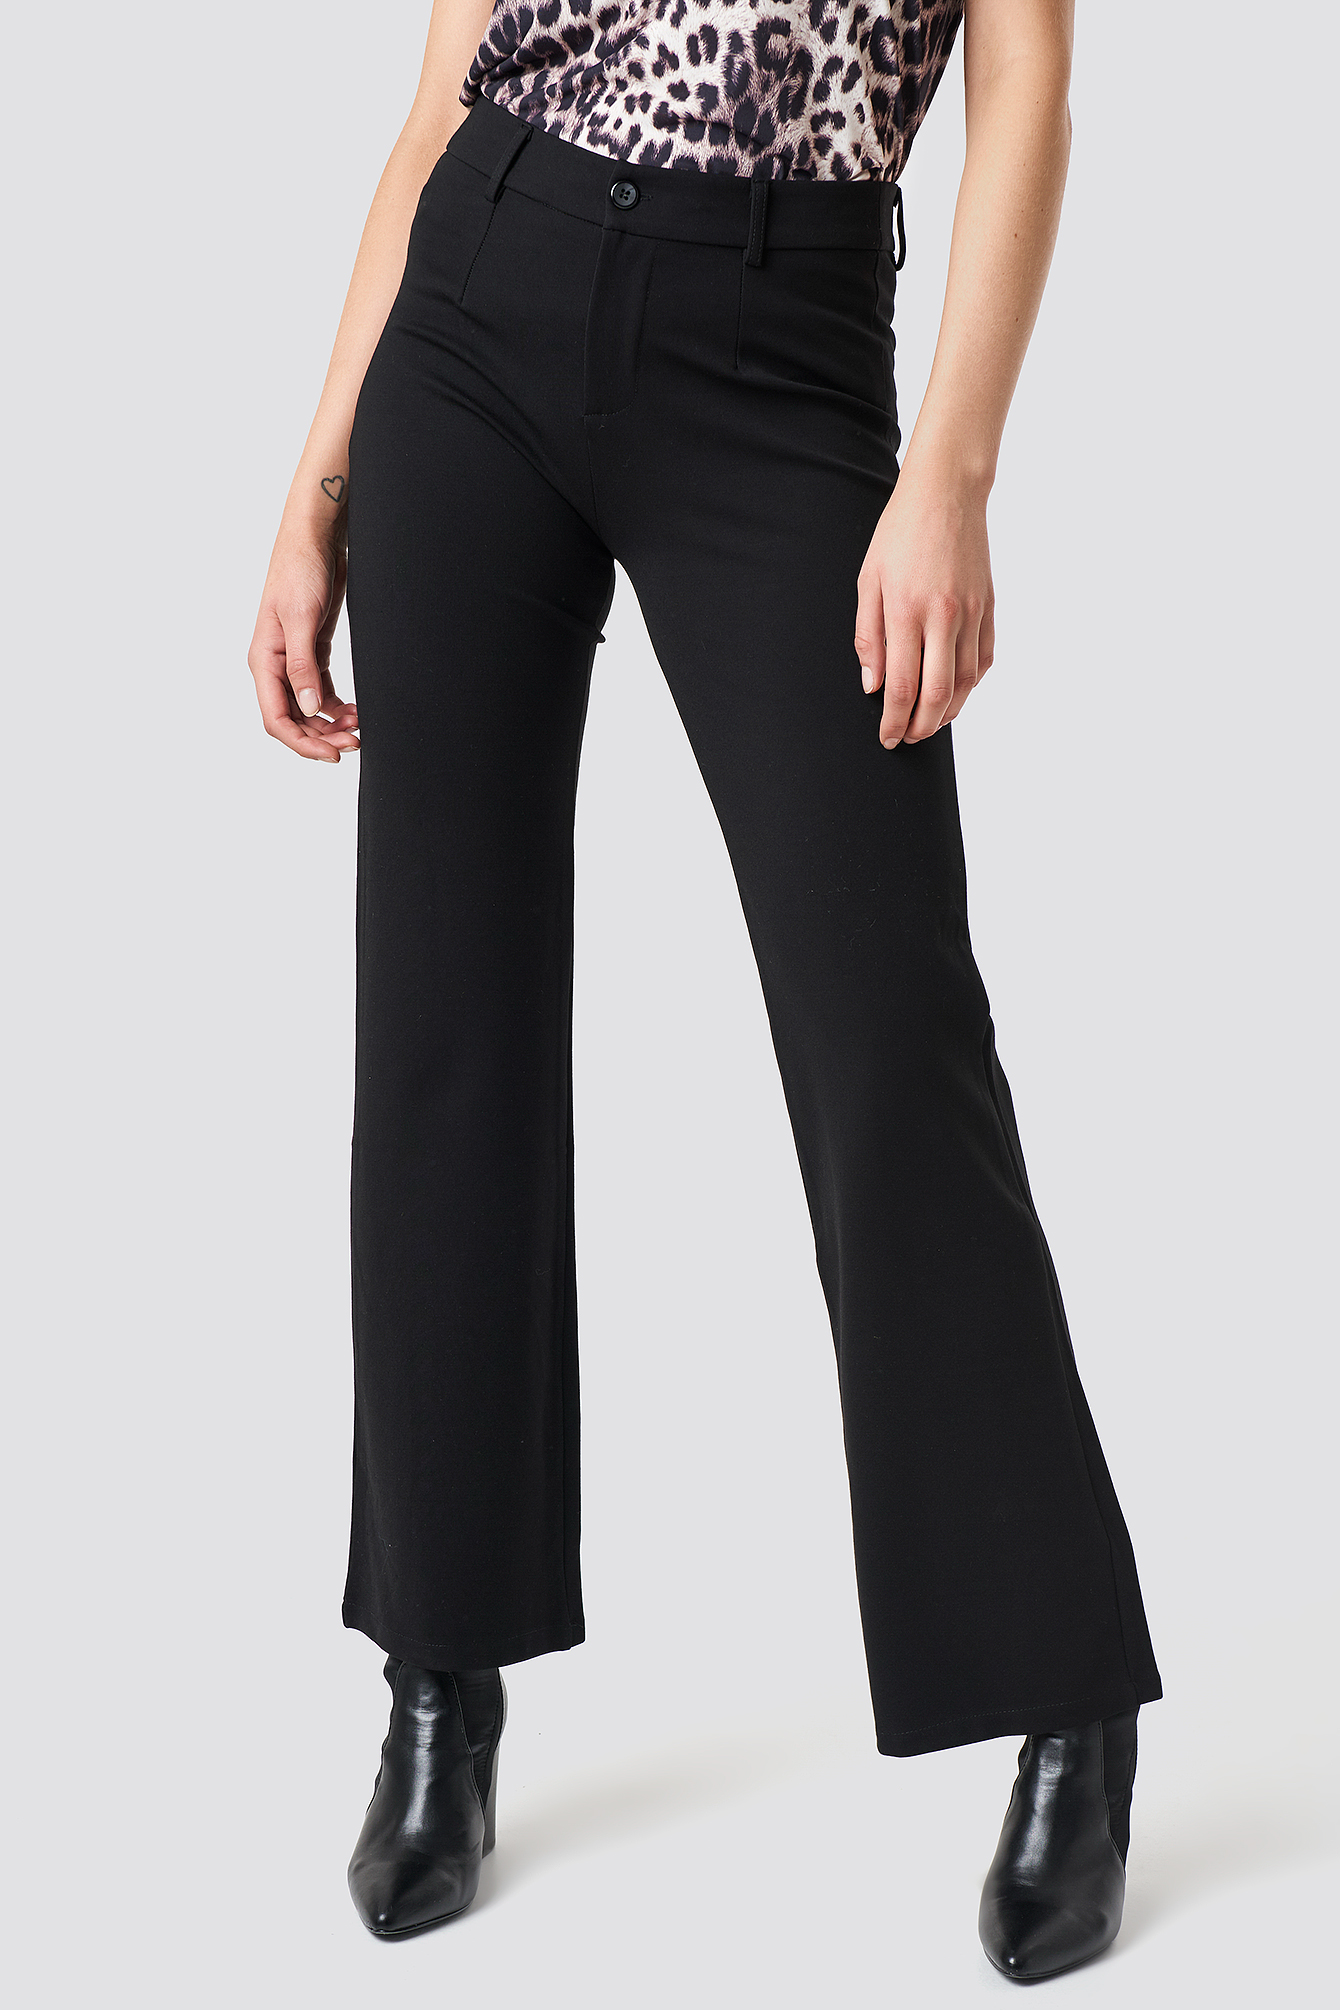 New George Pants 7 NA-KD.COM